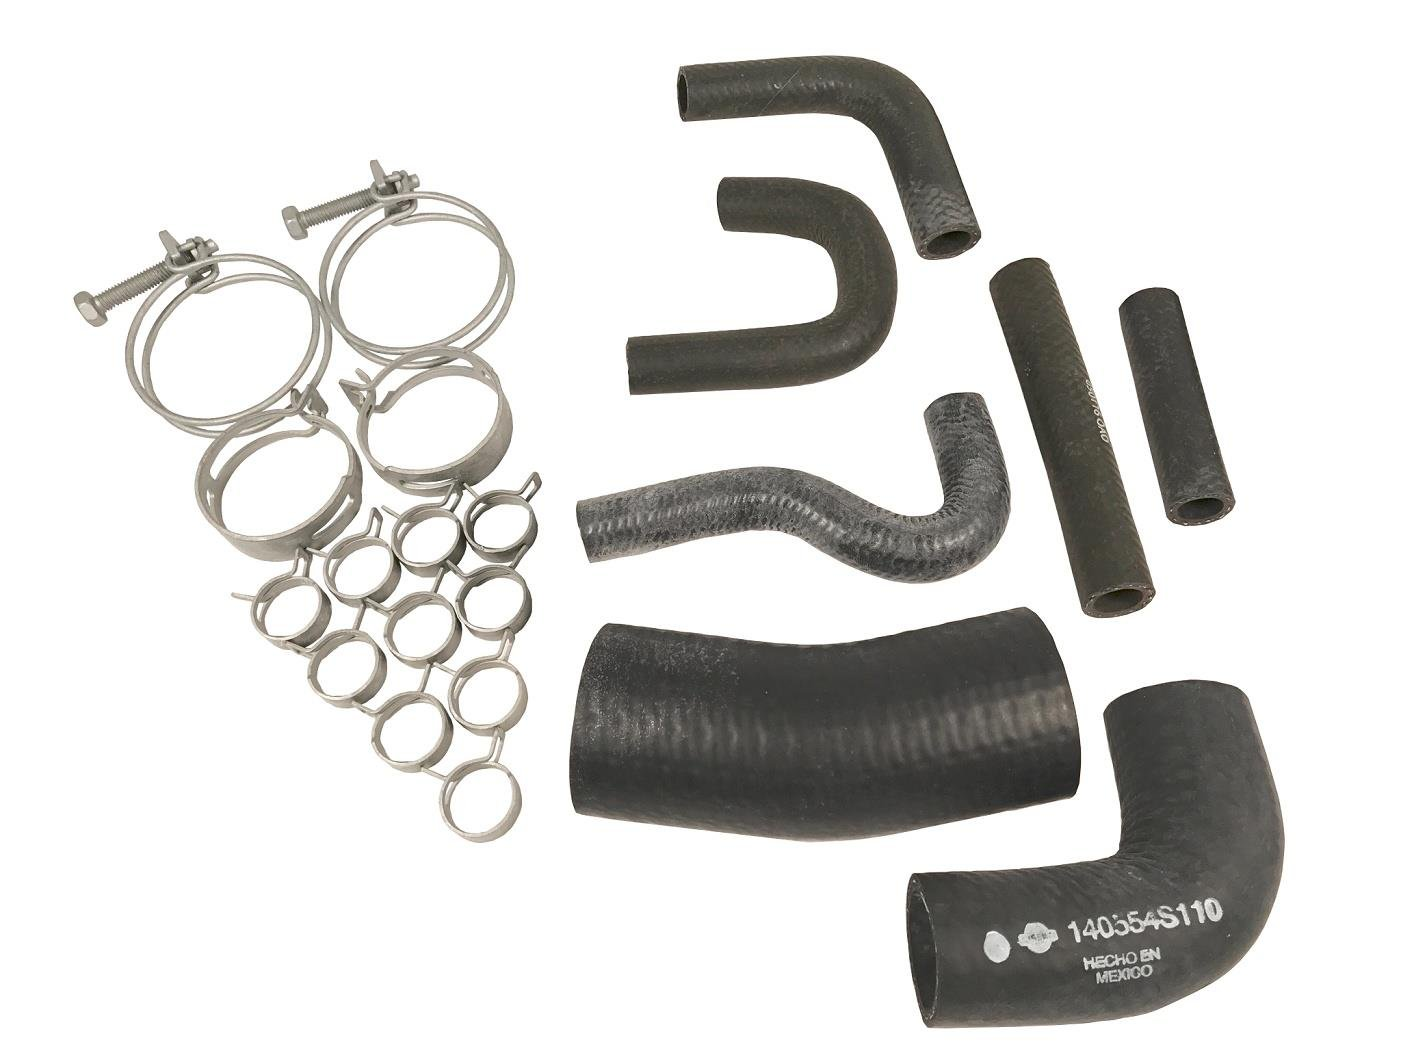 Genuine Nissan OEM Water Hose Replacement Kit 1999-2000 Frontier/Xterra (3.3 V6) by Nissan